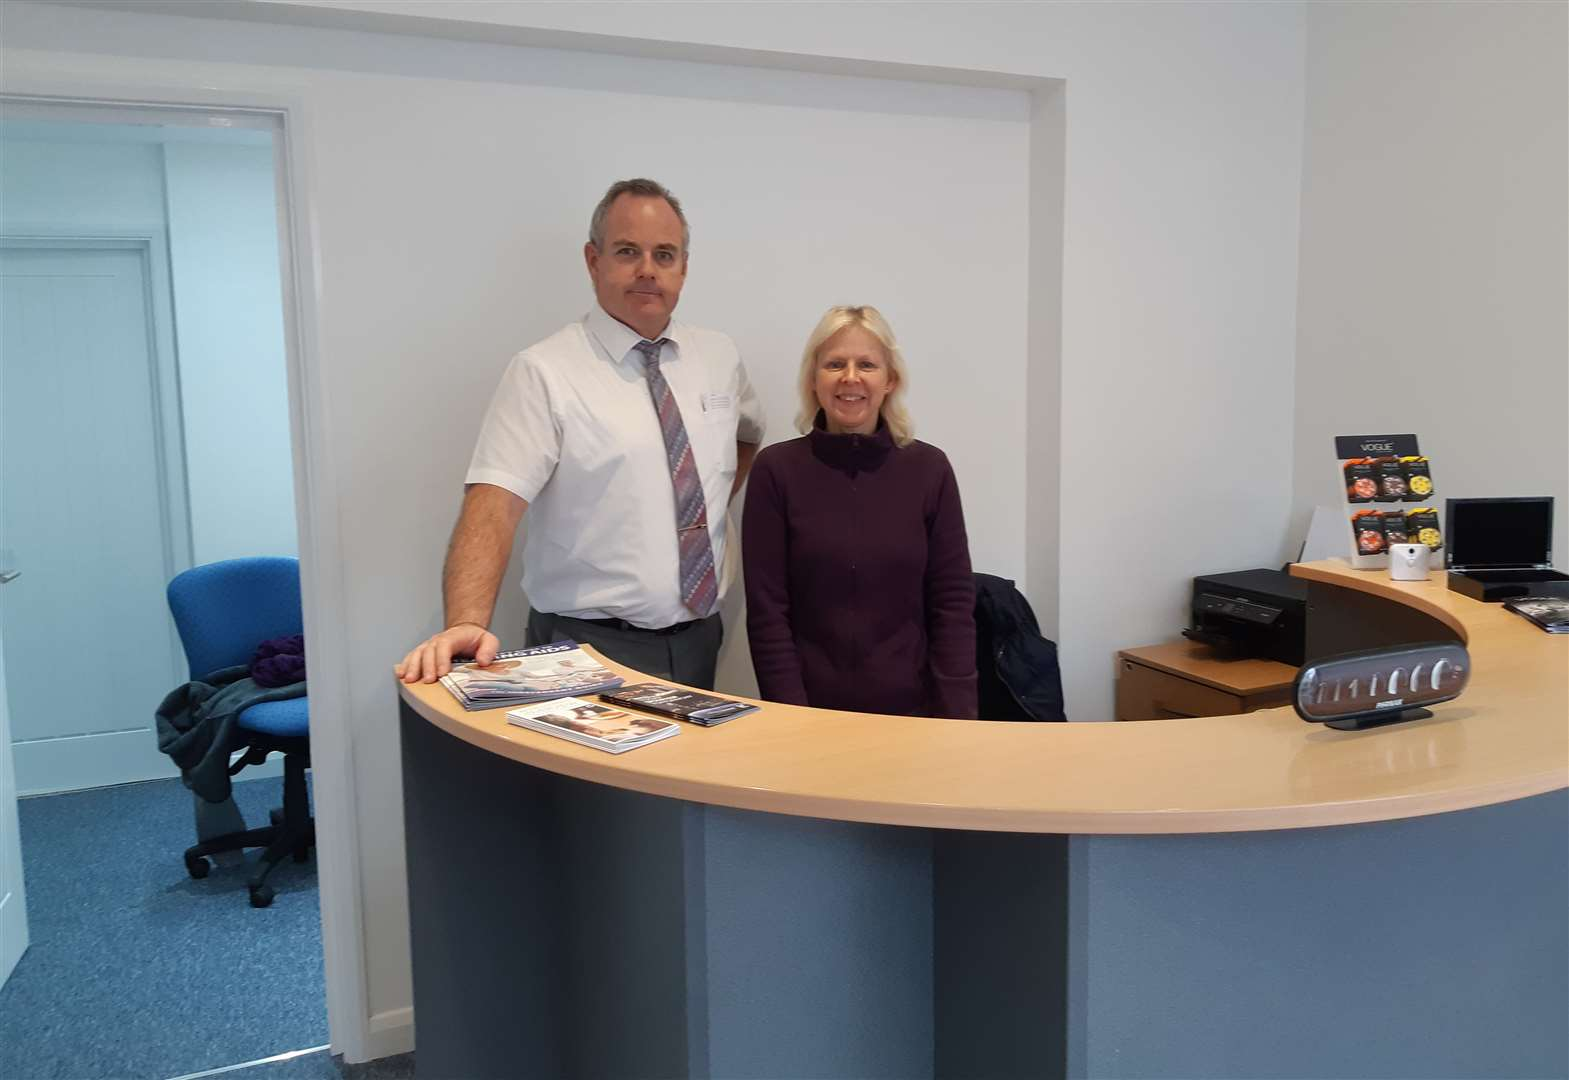 Audiologist opens up new shop in town centre